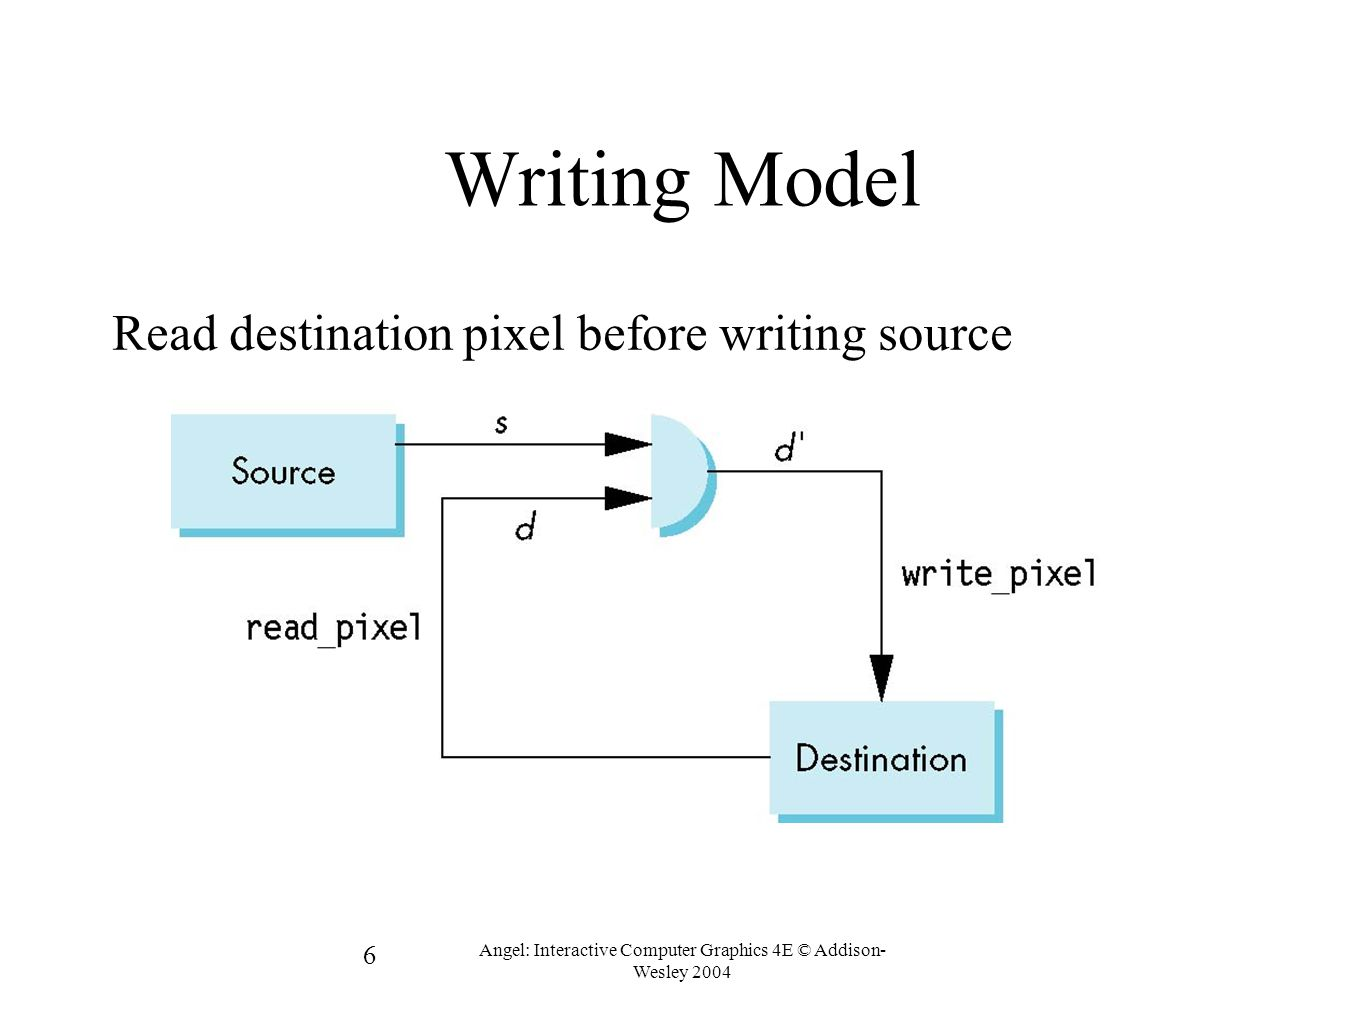 6 Angel: Interactive Computer Graphics 4E © Addison- Wesley 2004 Writing Model Read destination pixel before writing source